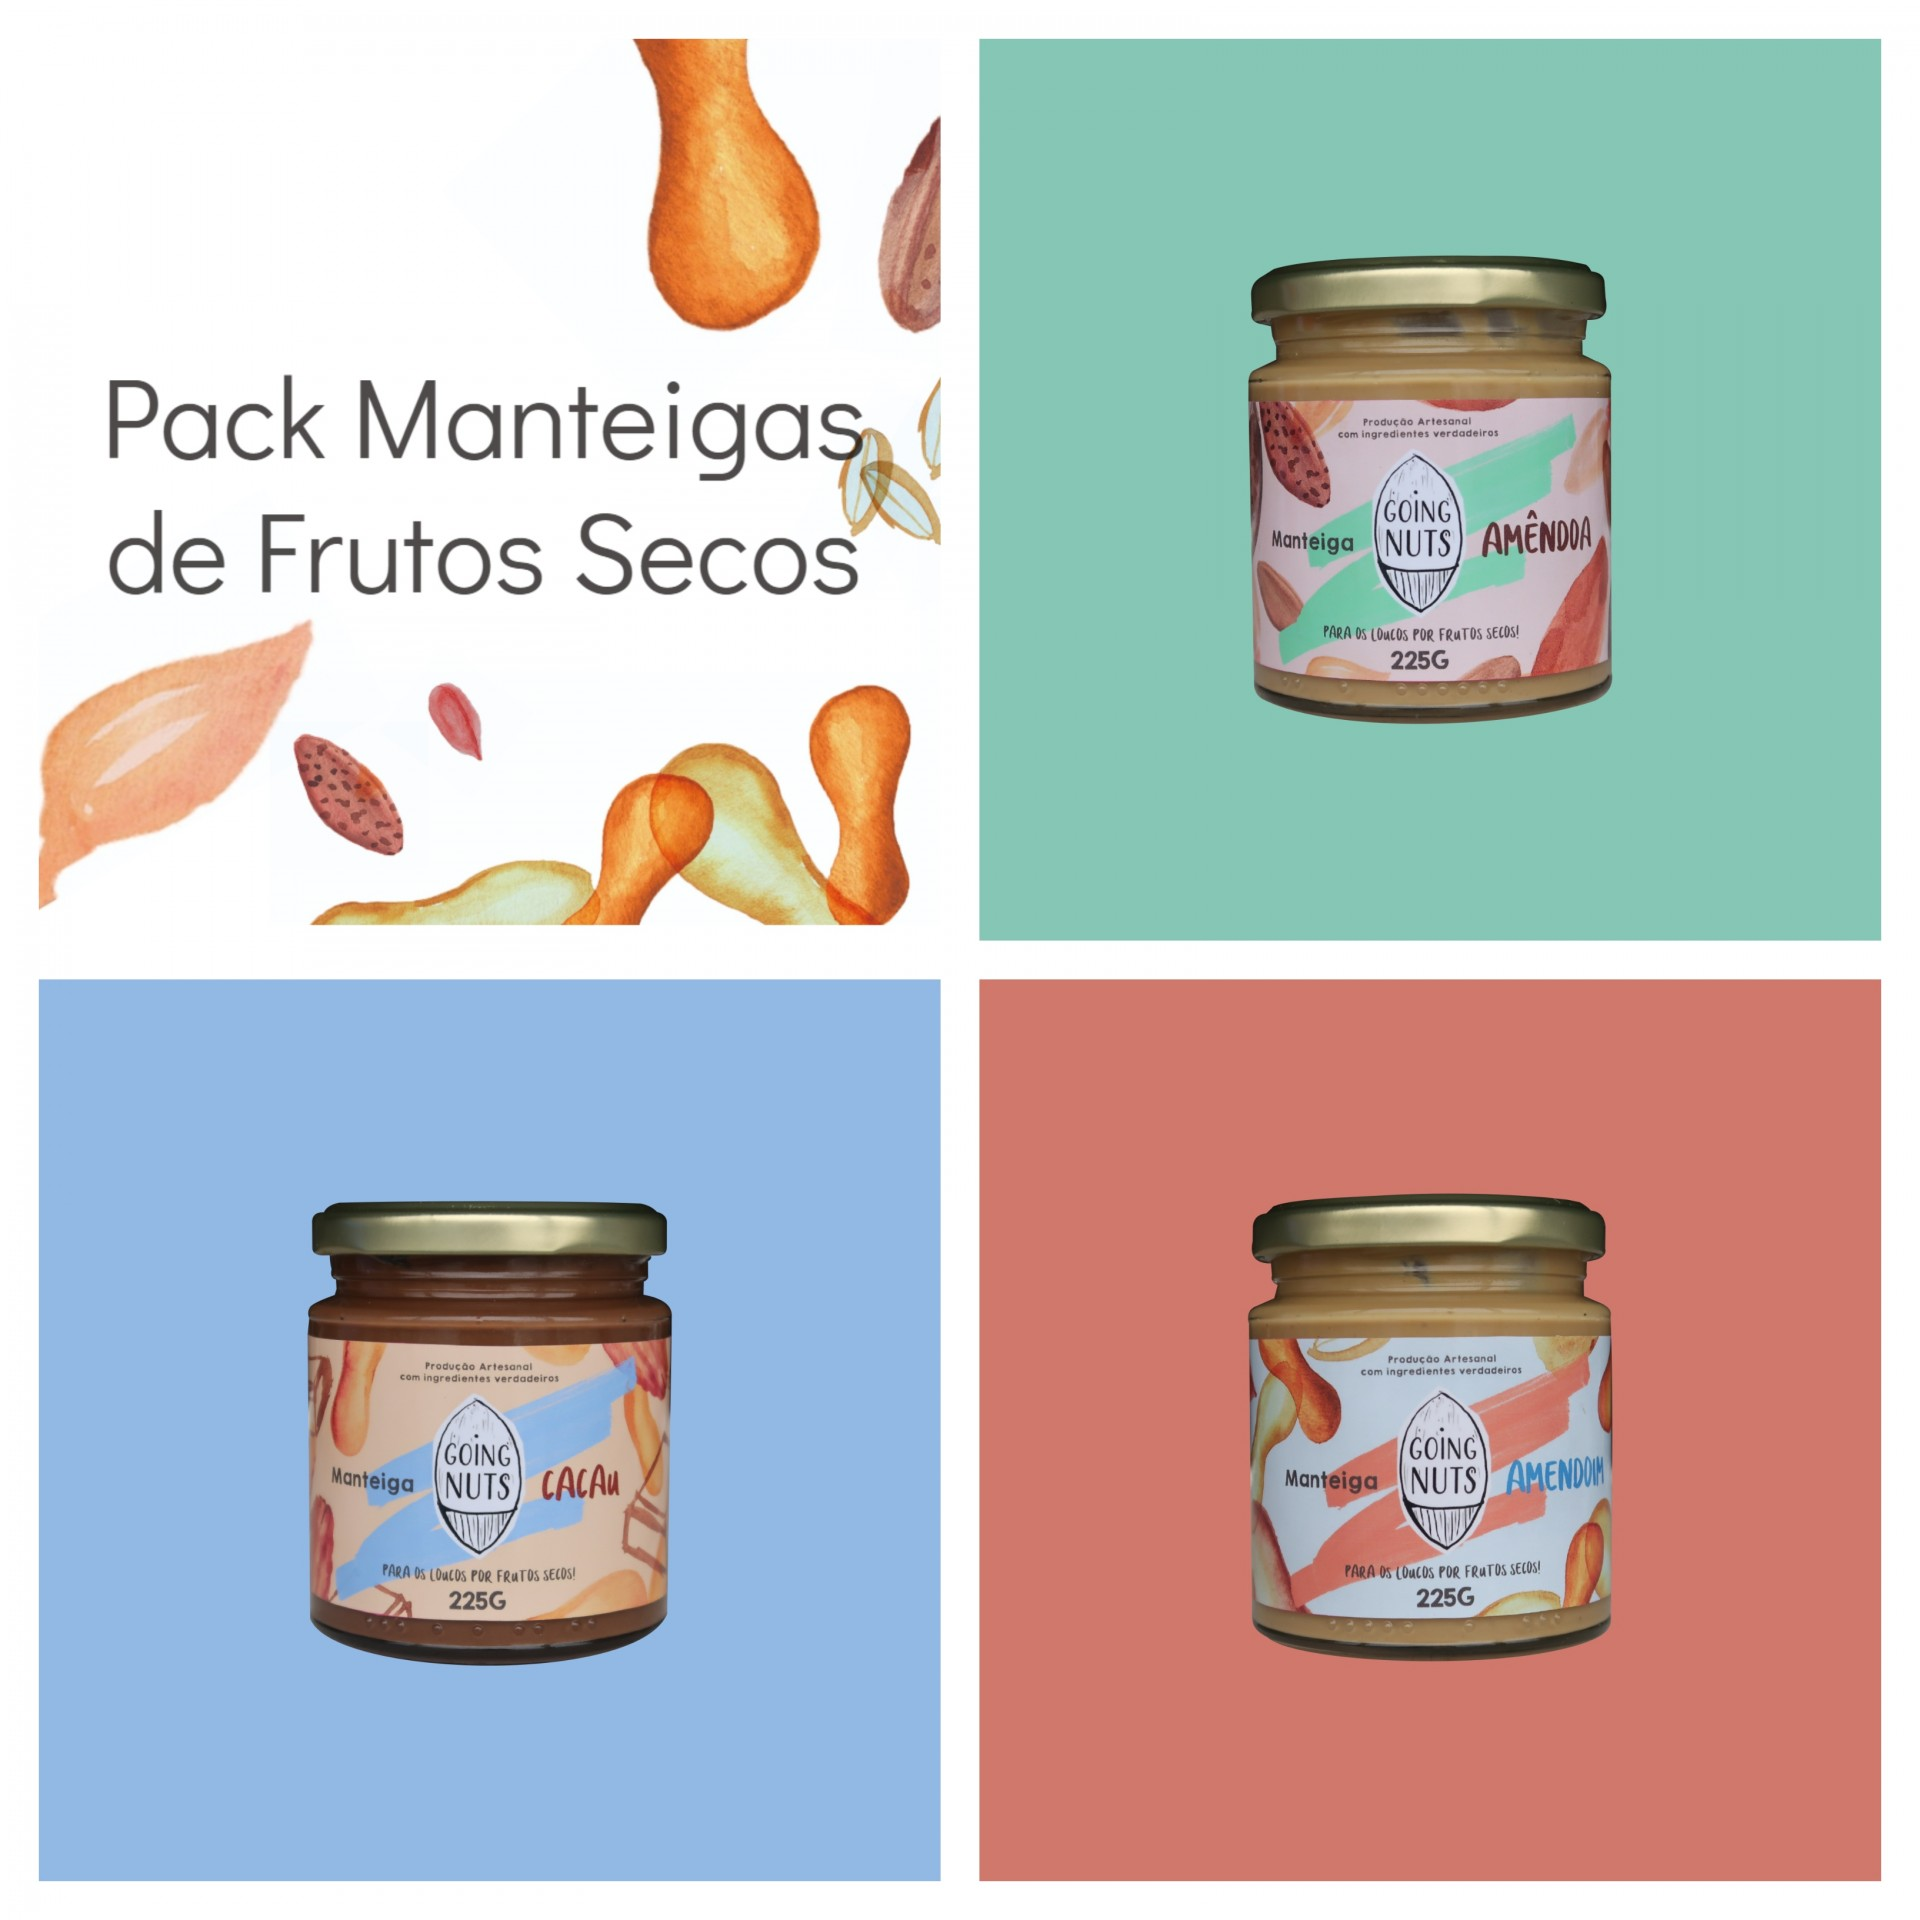 Pack Manteigas de Frutos Secos